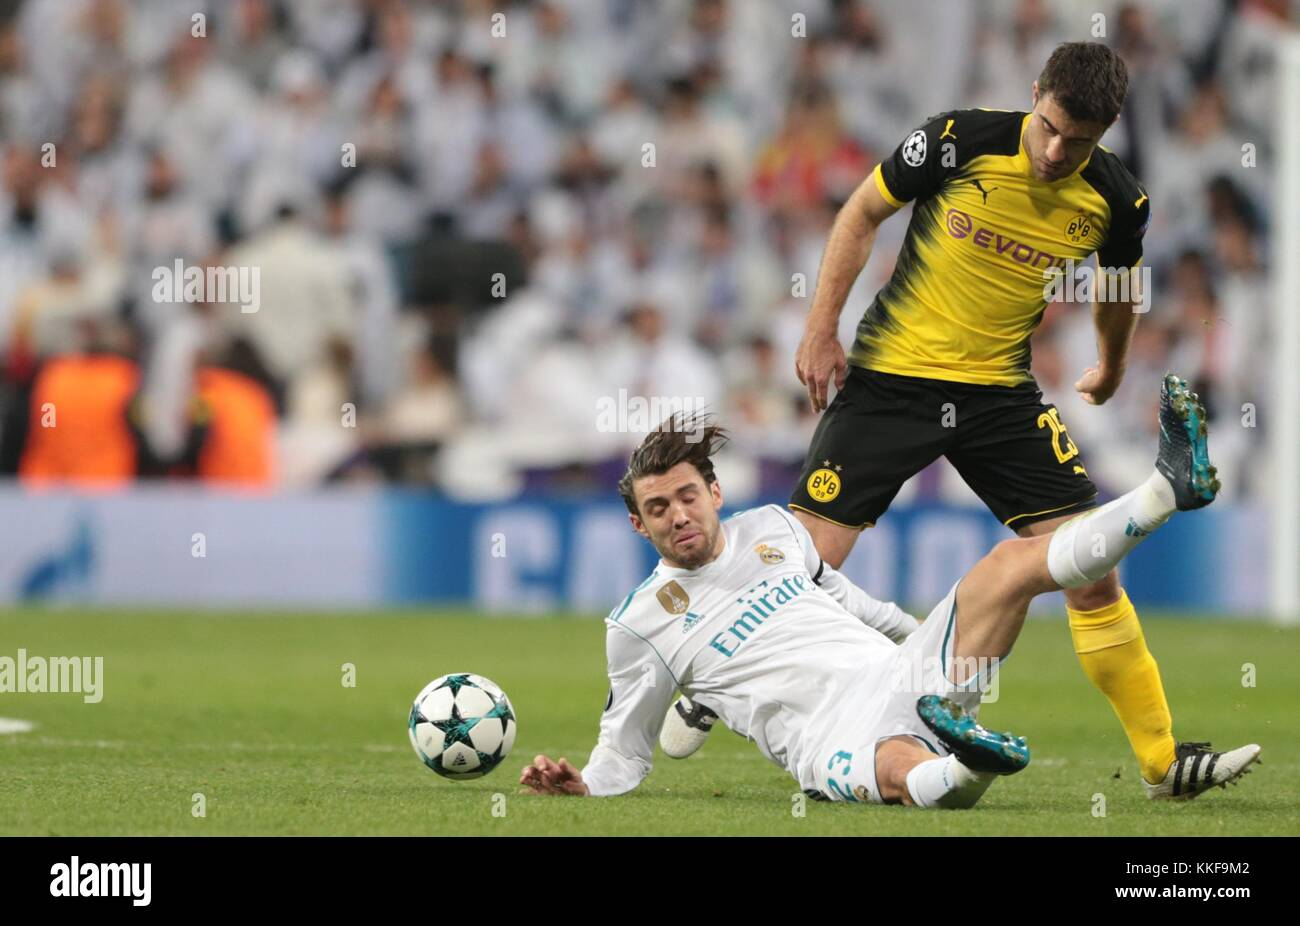 Madrid. 6th Dec, 2017. Mateo Kovacic(down) of Real Madrid competes during the UEFA Champions League group H football - Stock Image